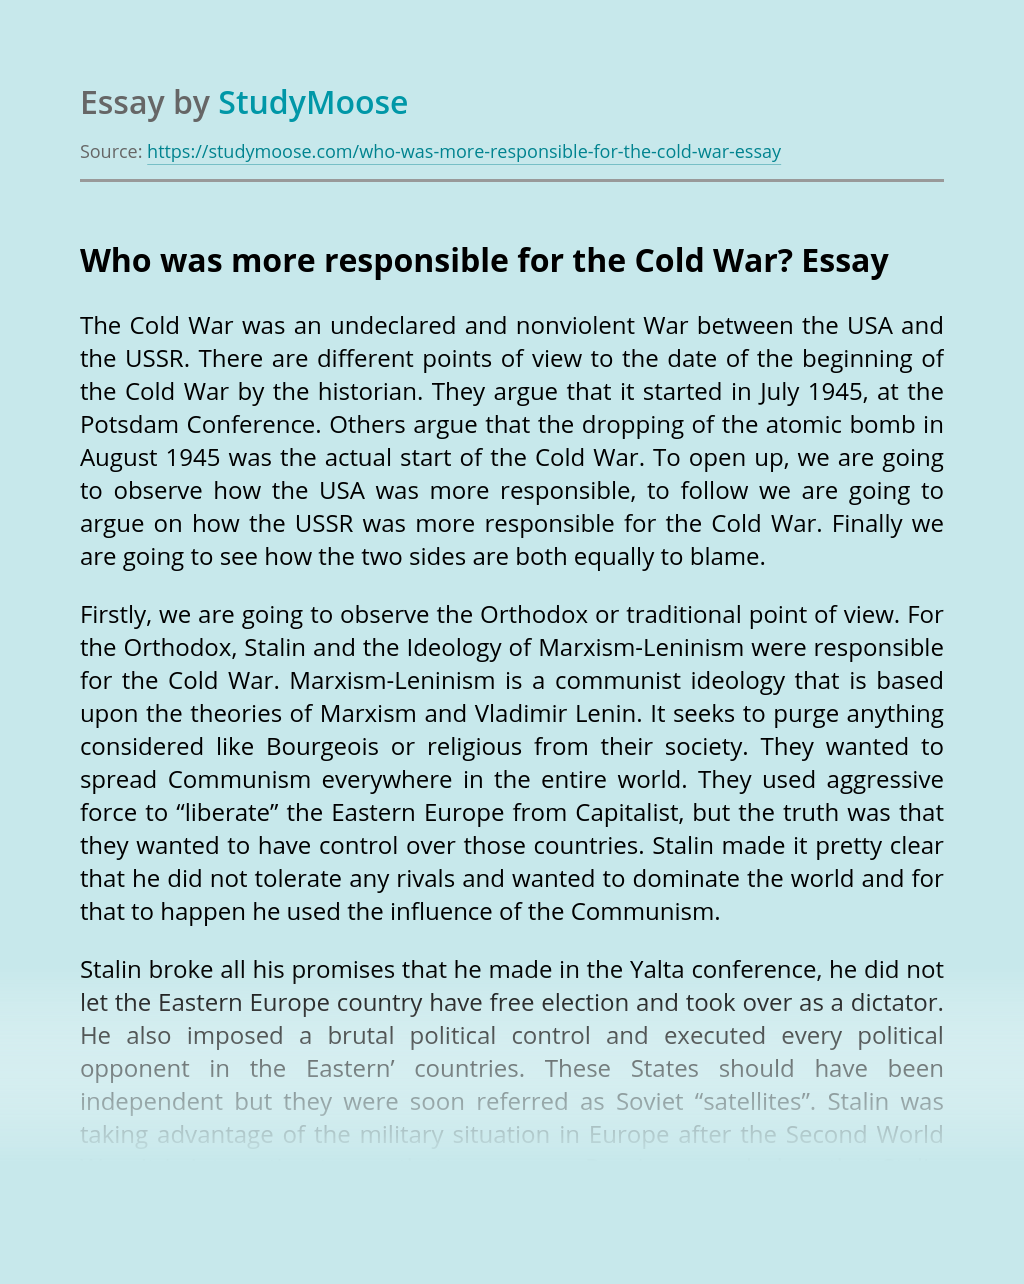 Who was more responsible for the Cold War?